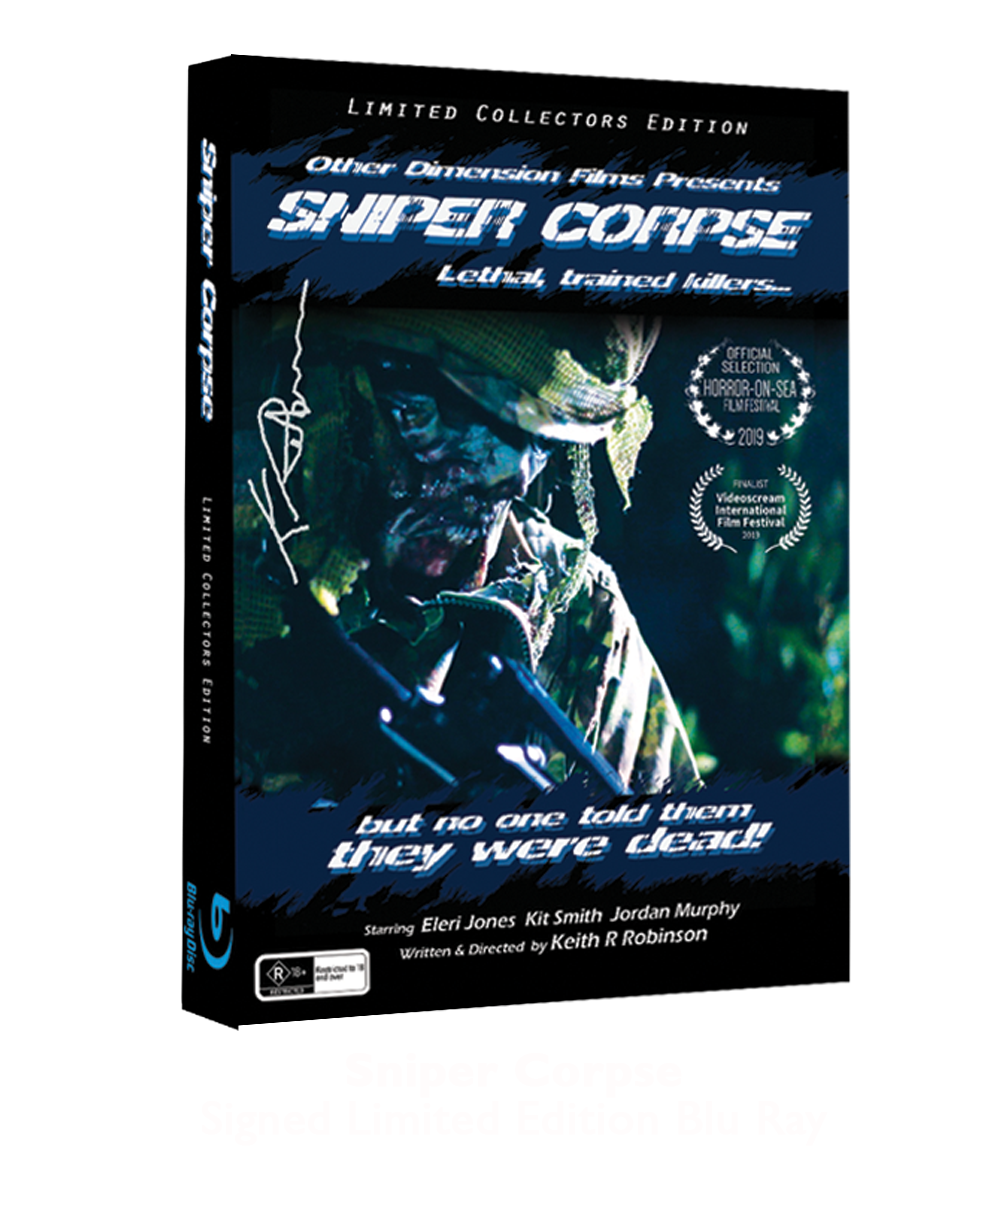 Sniper Corpse BRAY Disc WEBSITE STORE